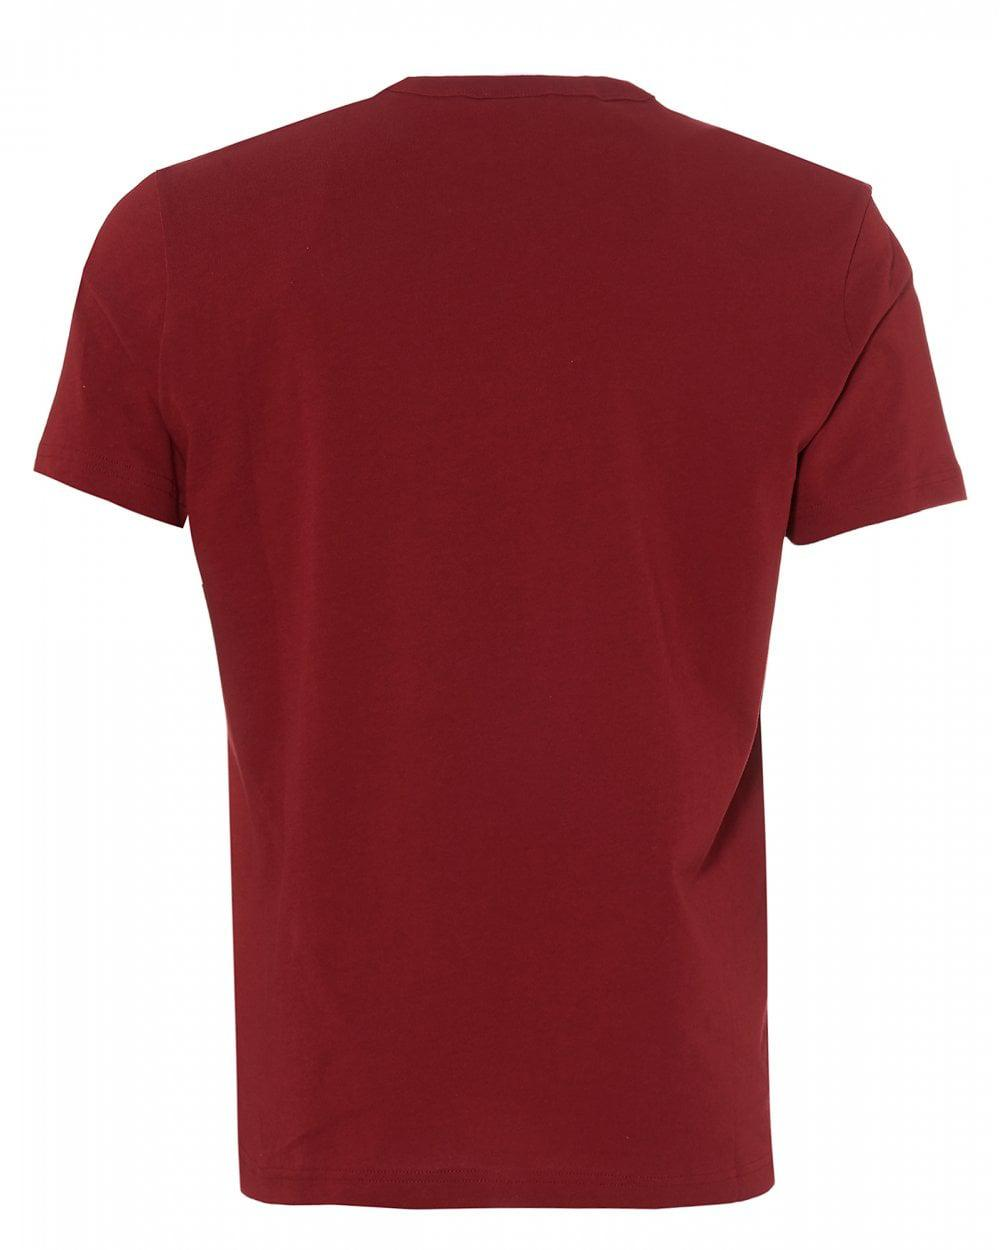 8c40455e Champion Large Script T-shirt, Burgundy Red Crew Neck Tee in Red for Men -  Save 53% - Lyst